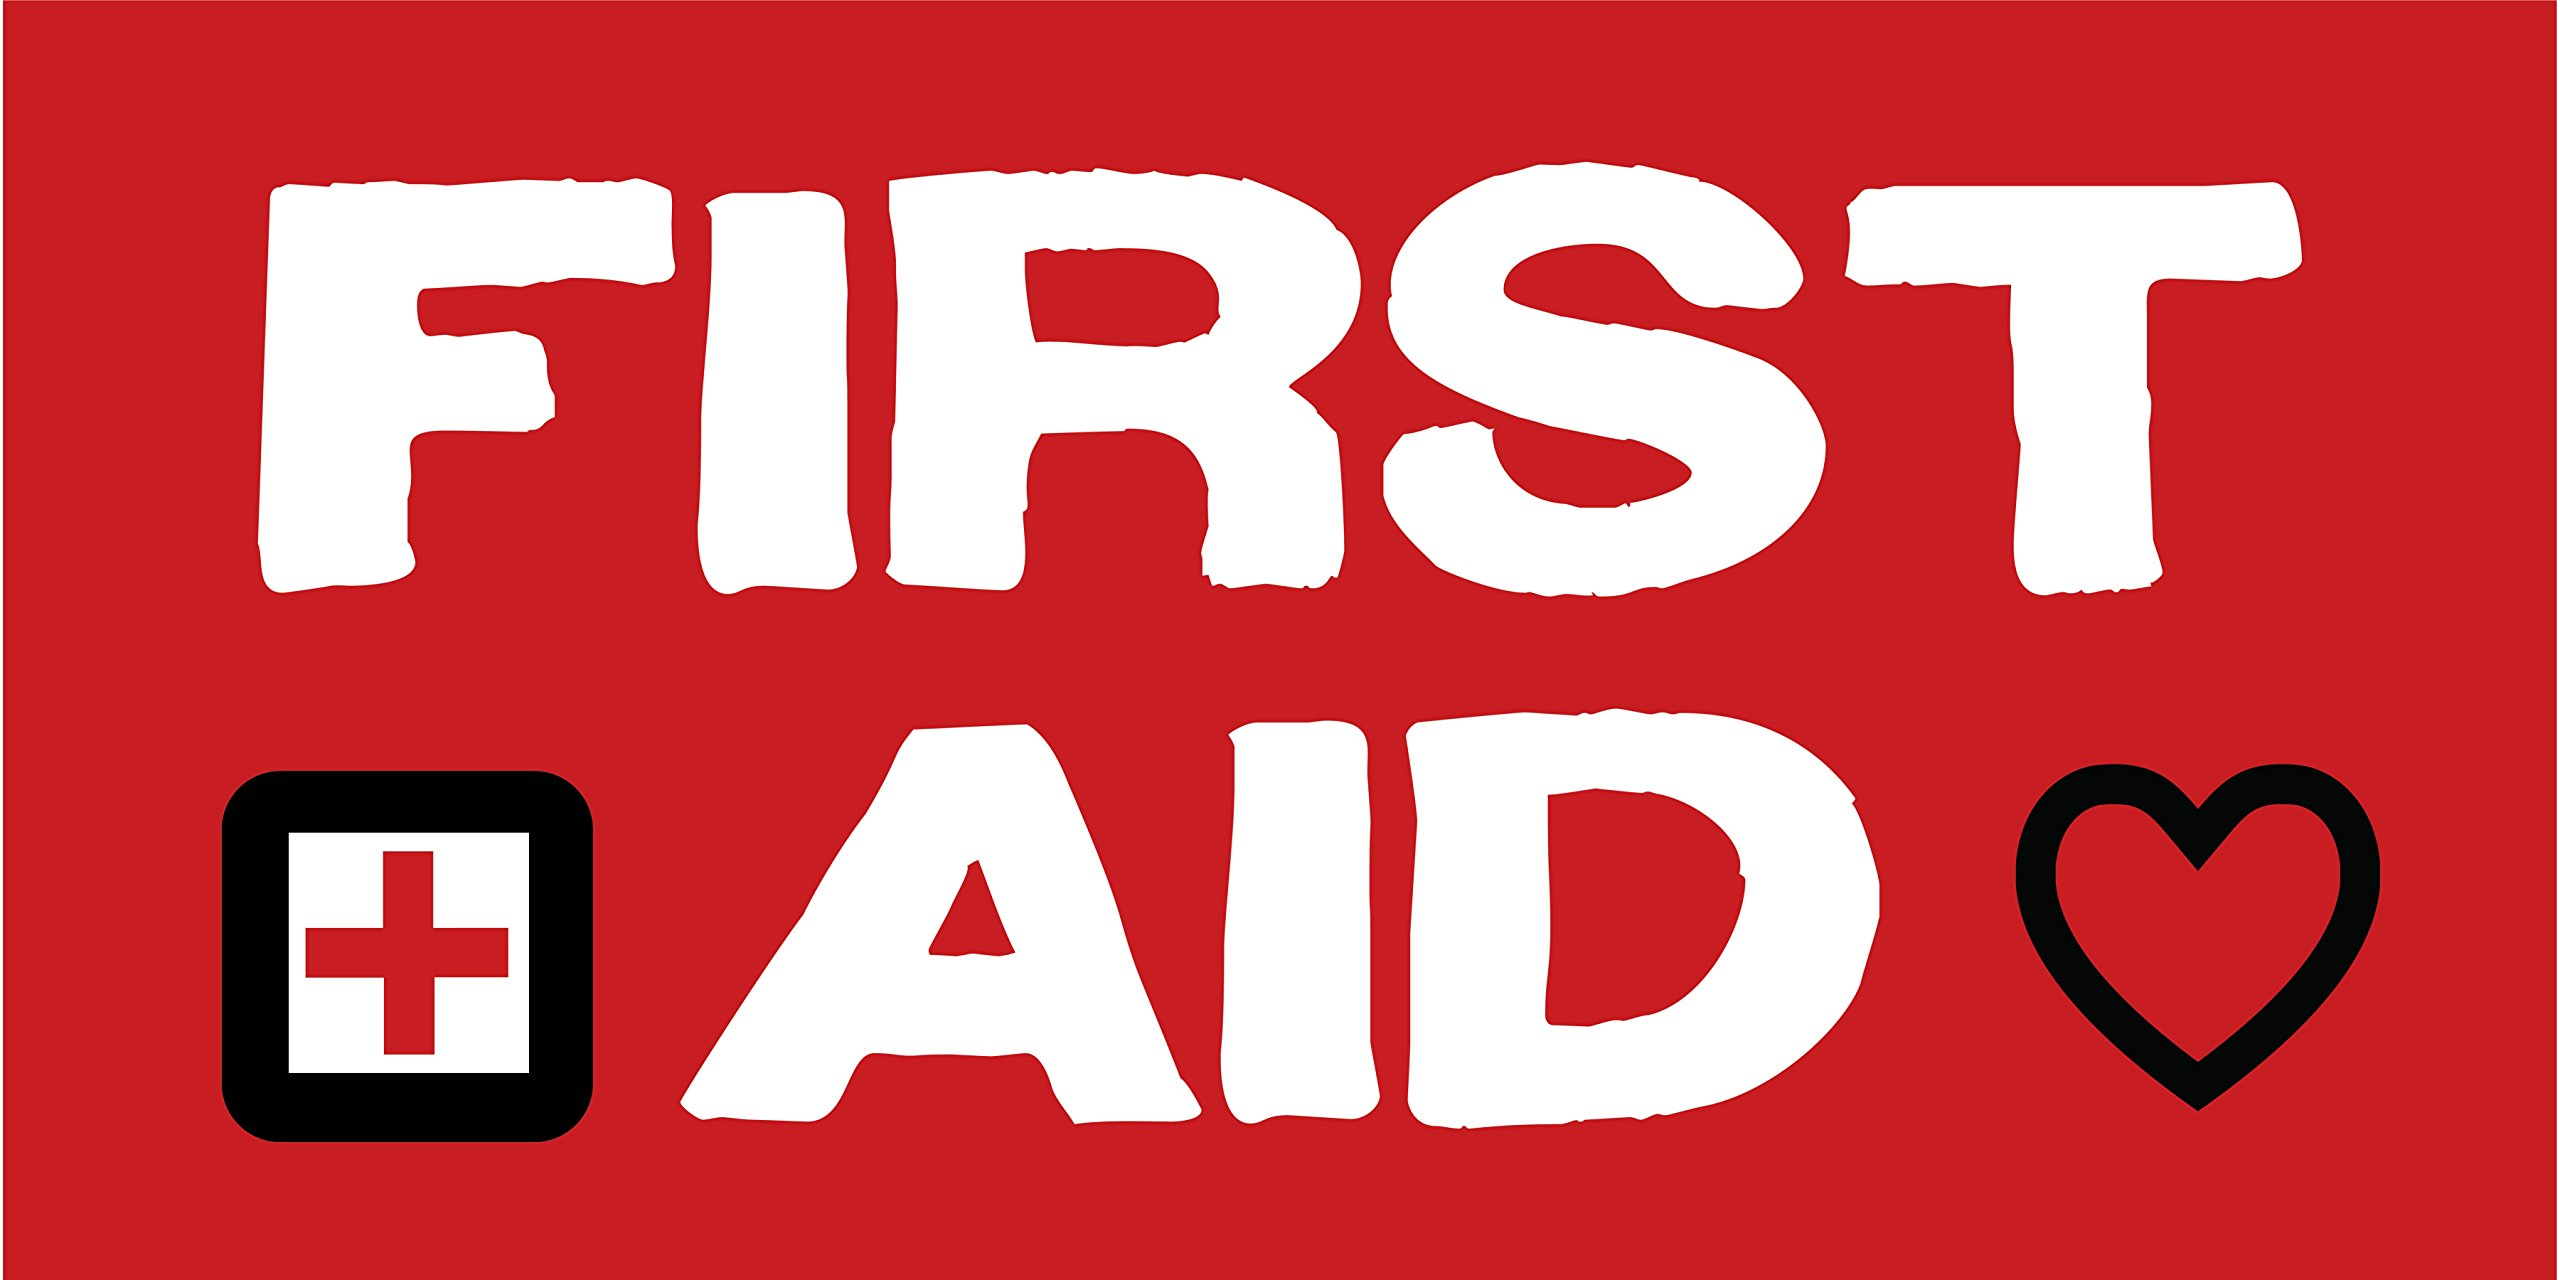 Pre-Printed - First Aid Banner - Red5 (10' x 5') by Reliable Banner Sign Supply & Printing